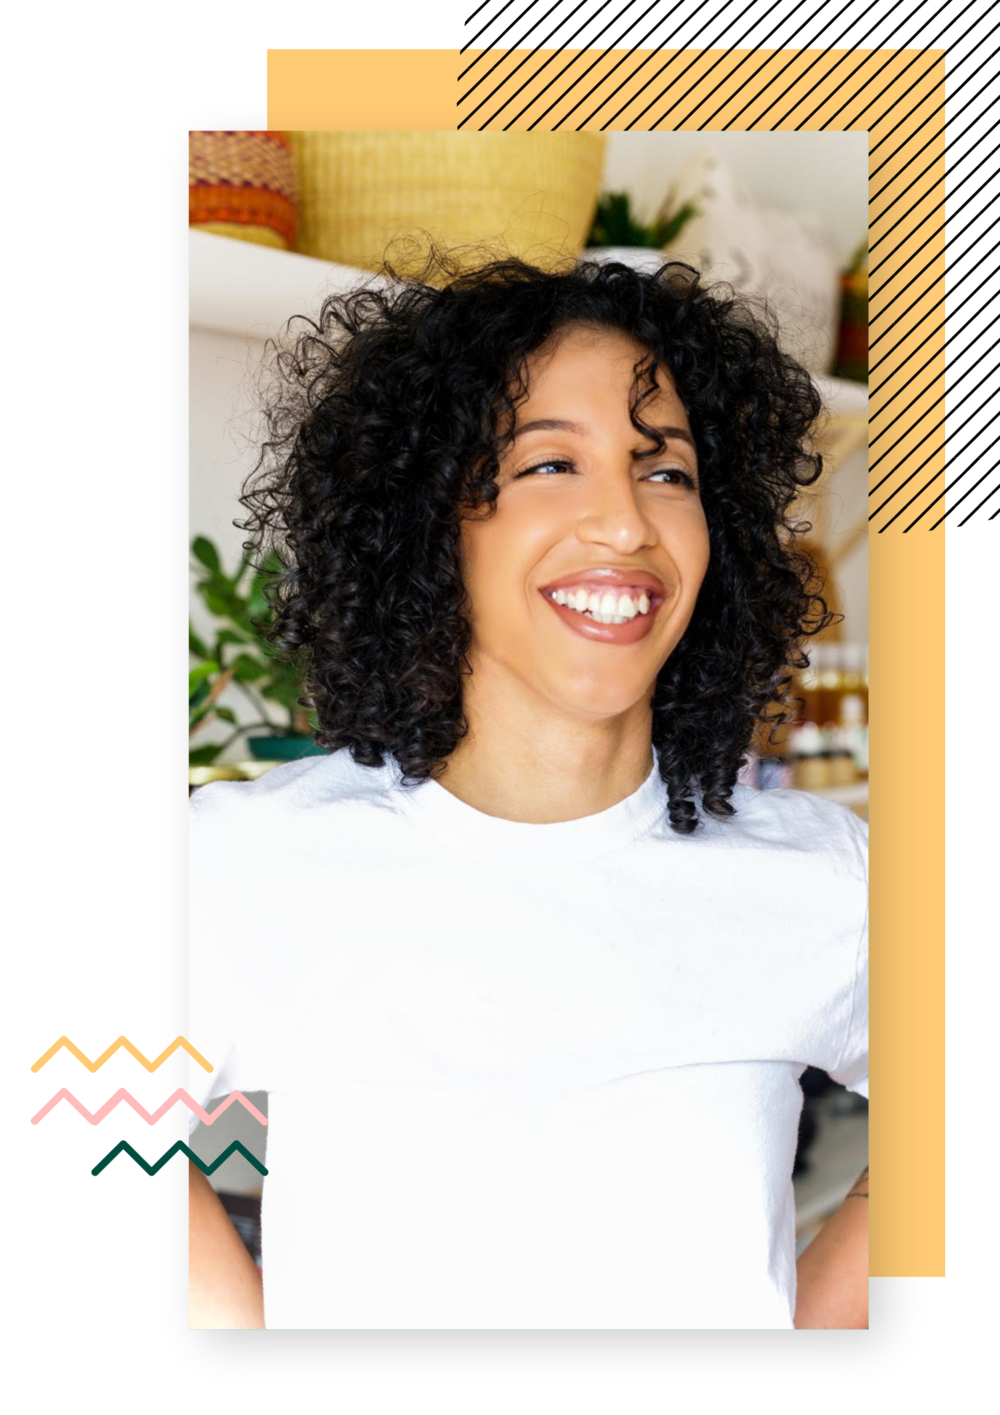 hi, i'm angie. - a California girl who loves creating, writing + connecting with people. this platform is here to serve aspiring women of color entrepreneurs because i believe we all have something meaningful to offer. the goal is to turn your passion into a service for others + stack your coins while doing what you love.this work for me is filled with purpose. i'm not here just to create beautiful websites + catchy taglines, i'm here to help women of color be seen + heard. i want my work to truly represent the beauty of our unique experiences + offer a fresh perspective on how we are seen in business. not only to level up our collective culture, but to show that women of color can invest in themselves to live the life they want, not just the one they're given.